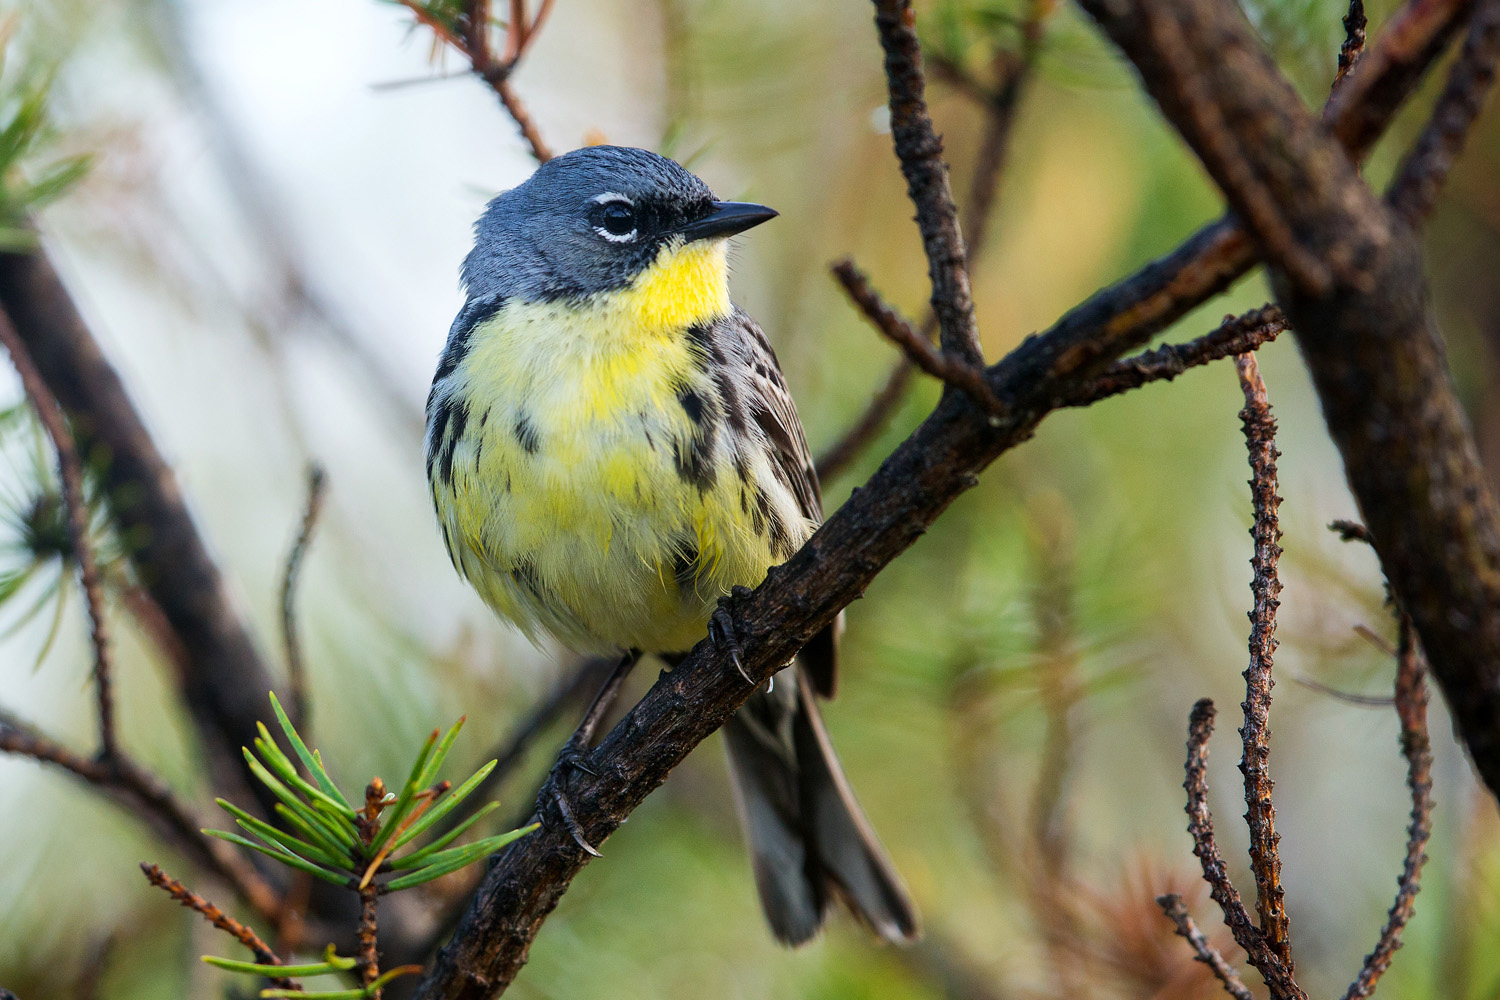 Kirtland's warbler songbird sits on a tree branch